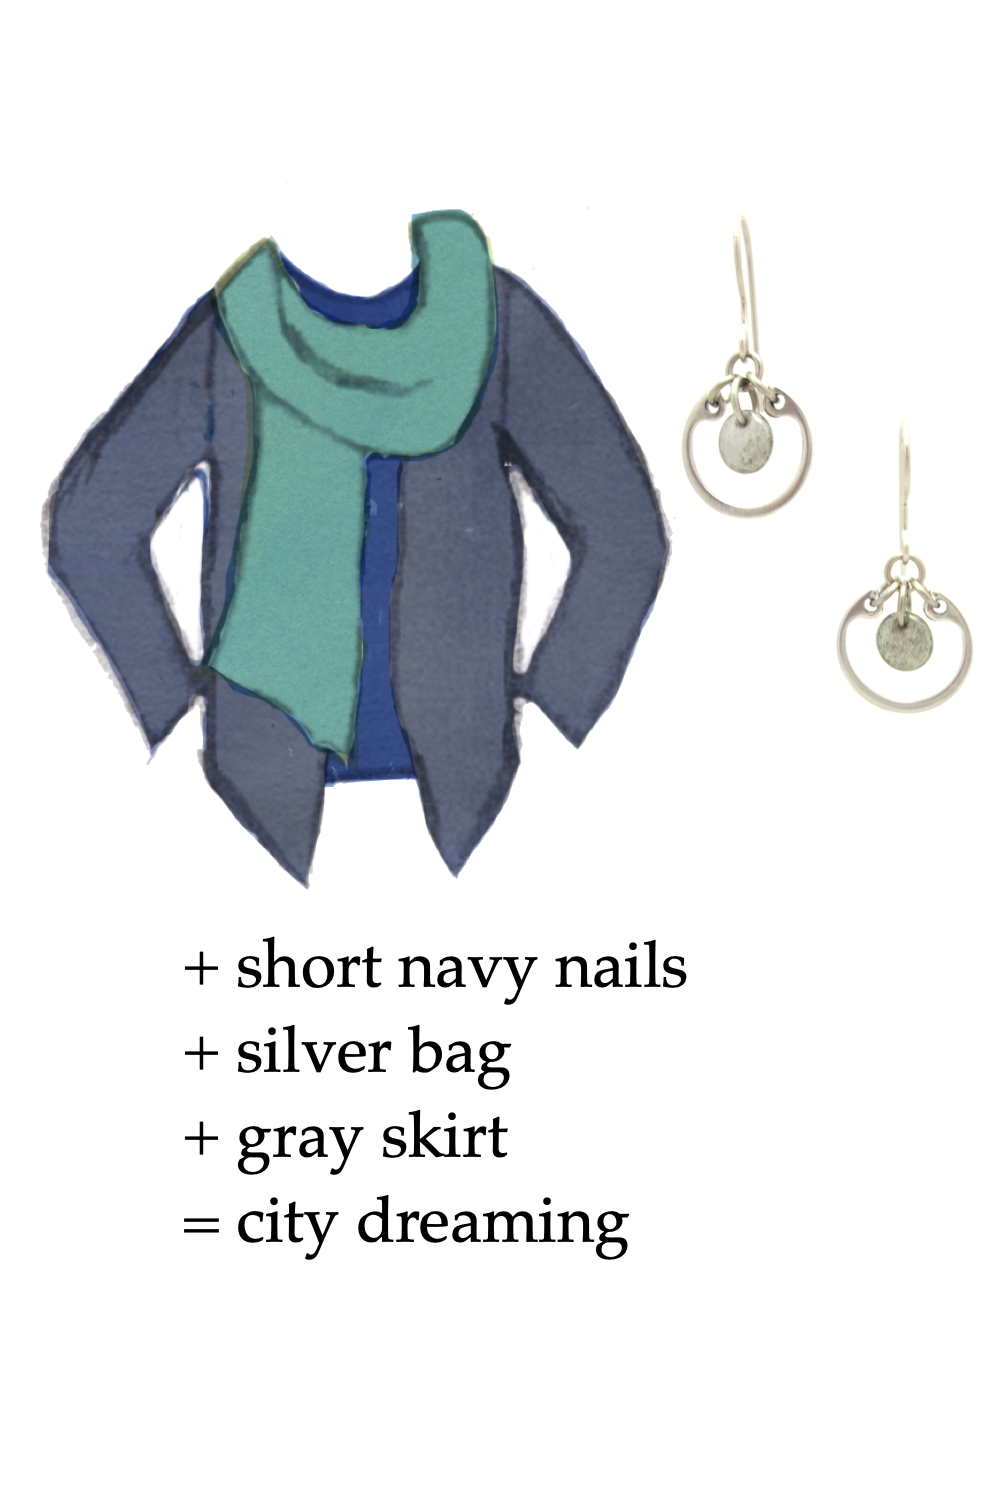 Style sketch of an outfit idea in shades of blue, with a dark blue tee, turquoise scarf, & dusty indigo cardigan, with Wraptillion's small modern circle earrings in gray. Text on image reads: + short navy nails + silver bag + gray skirt = city dreaming